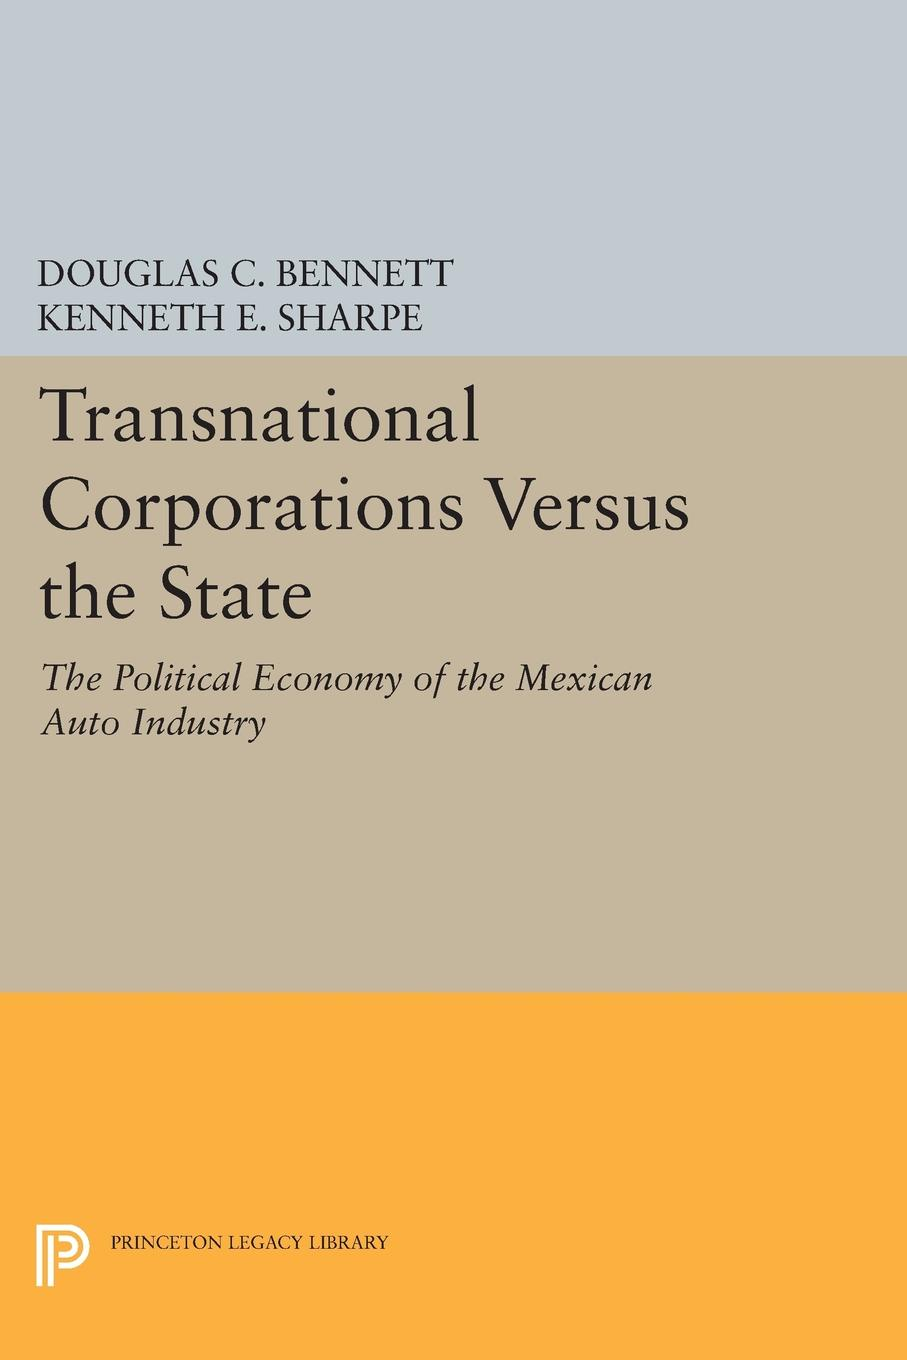 Douglas C. Bennett, Kenneth E. Sharpe Transnational Corporations versus the State. The Political Economy of the Mexican Auto Industry christina sather princeton car show economy version